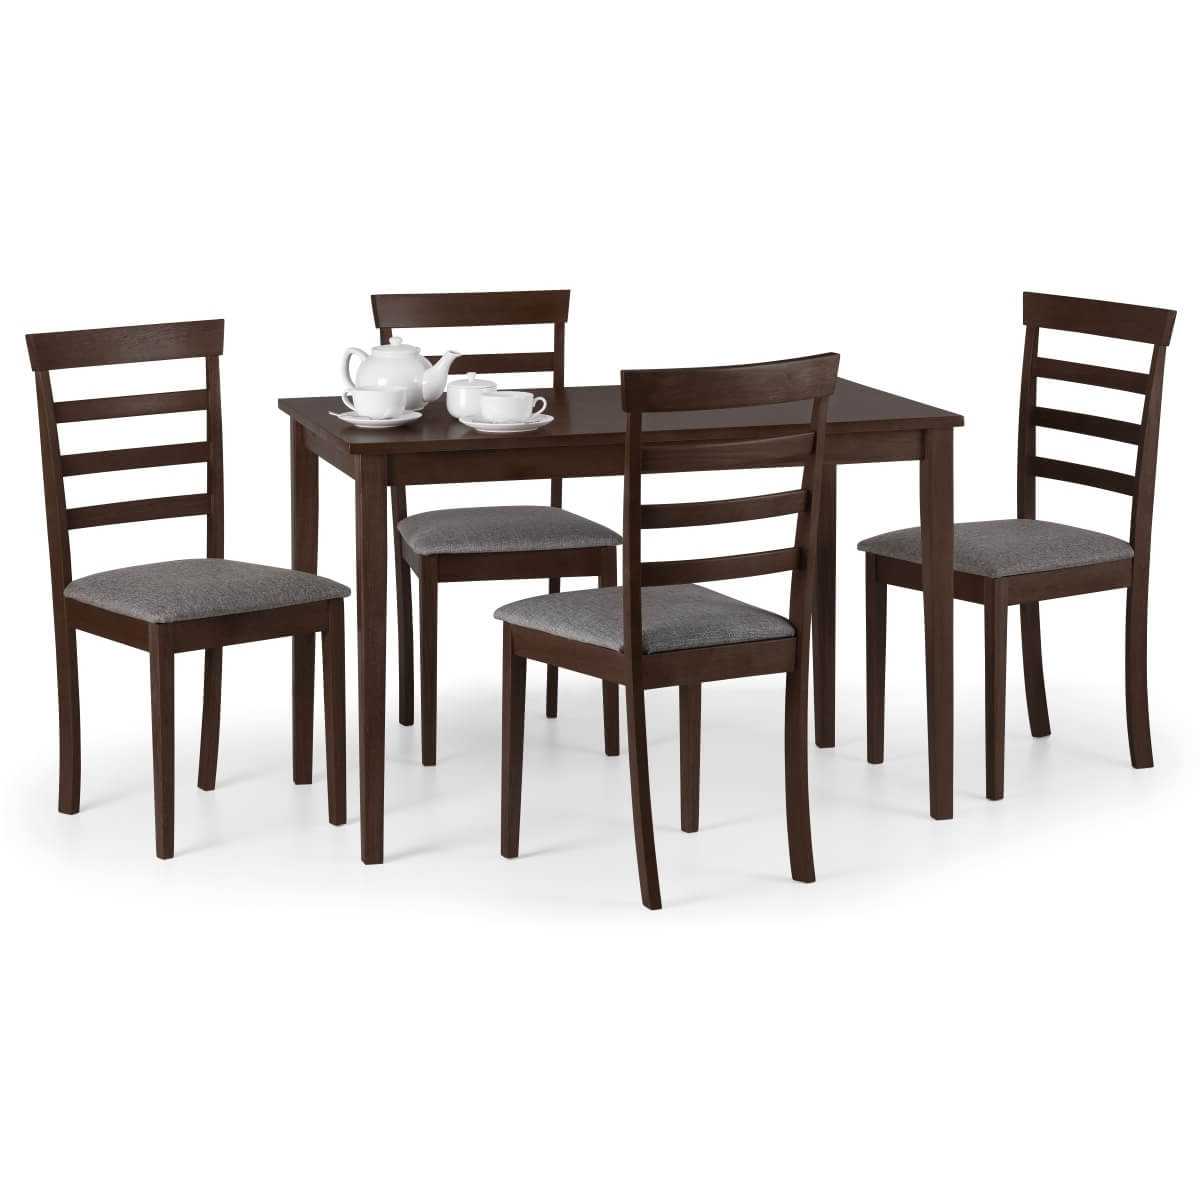 Mahogany Dining Tables And 4 Chairs Intended For Preferred Dining Set – Cleo Dining Table And 4 Dining Chairs In Mahogany Cle901 (Gallery 19 of 25)